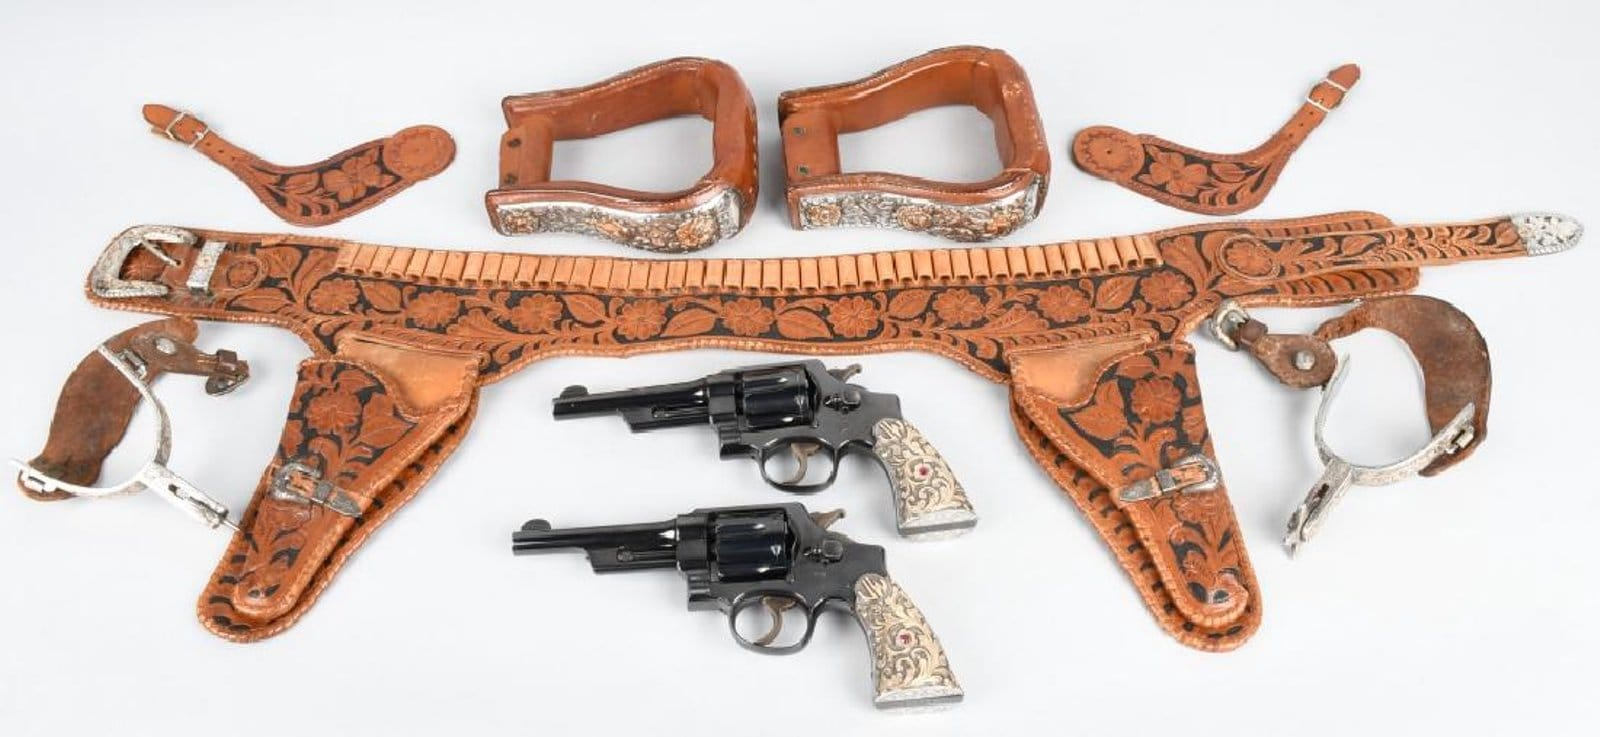 Two 1932 Smith & Wesson matching .38/.44 fixed-sight revolvers, personal property of movie icon John Wayne, JW initials on grips, hand-tooled leather double holster with gold-overlaid, ruby-adorned silver buckles; stirrups, spurs. Est. $10,000-$20,000. (Photo: Milestone Auctions)